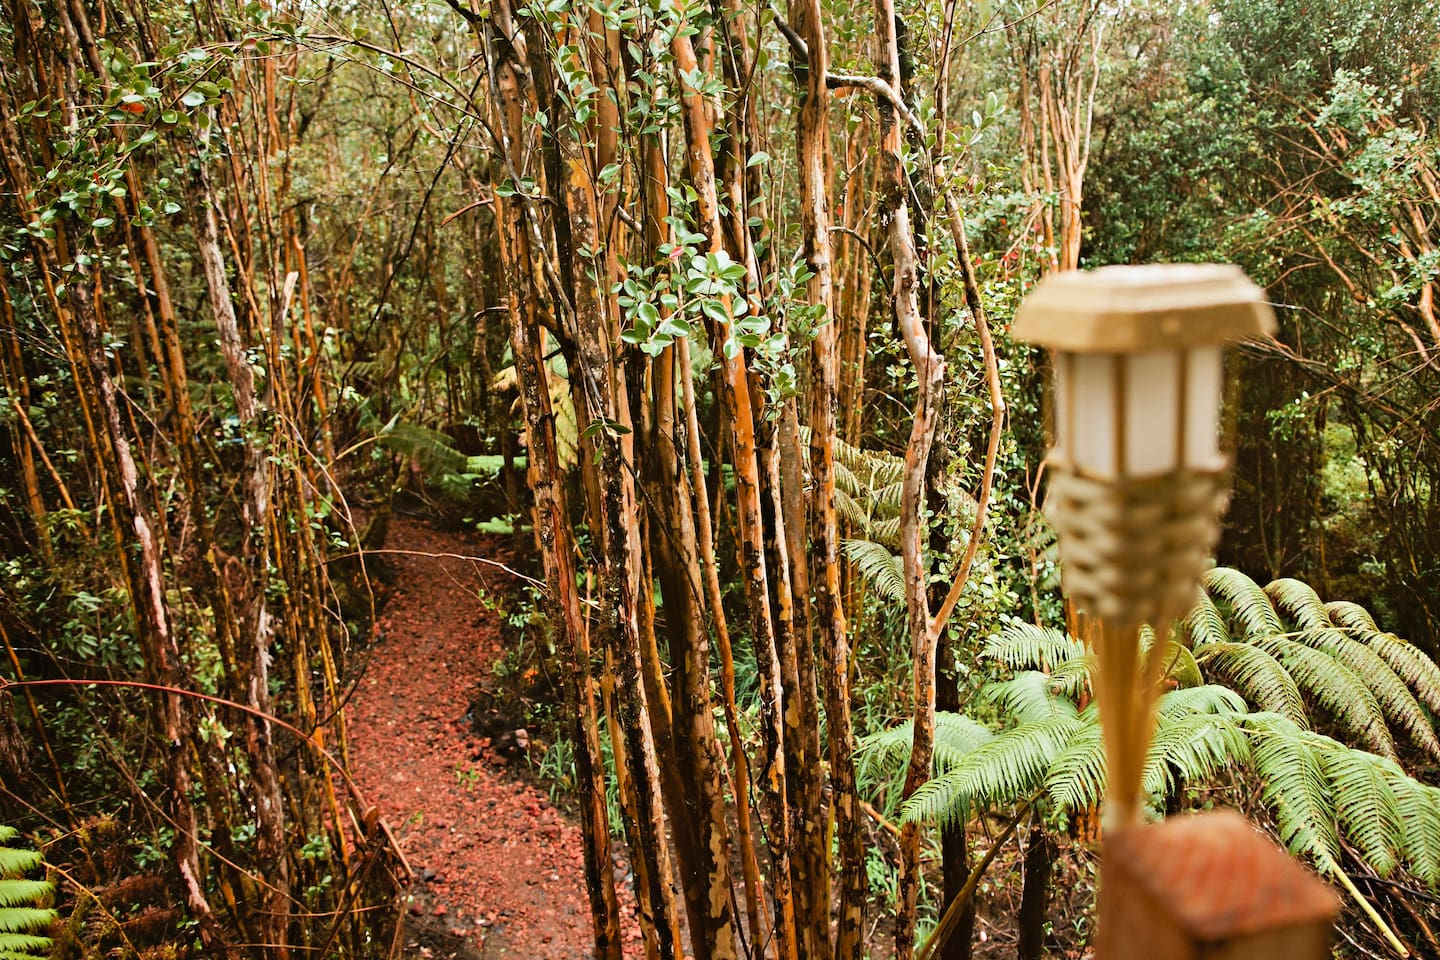 Just follow the red cinder path; adventure and luxury await you